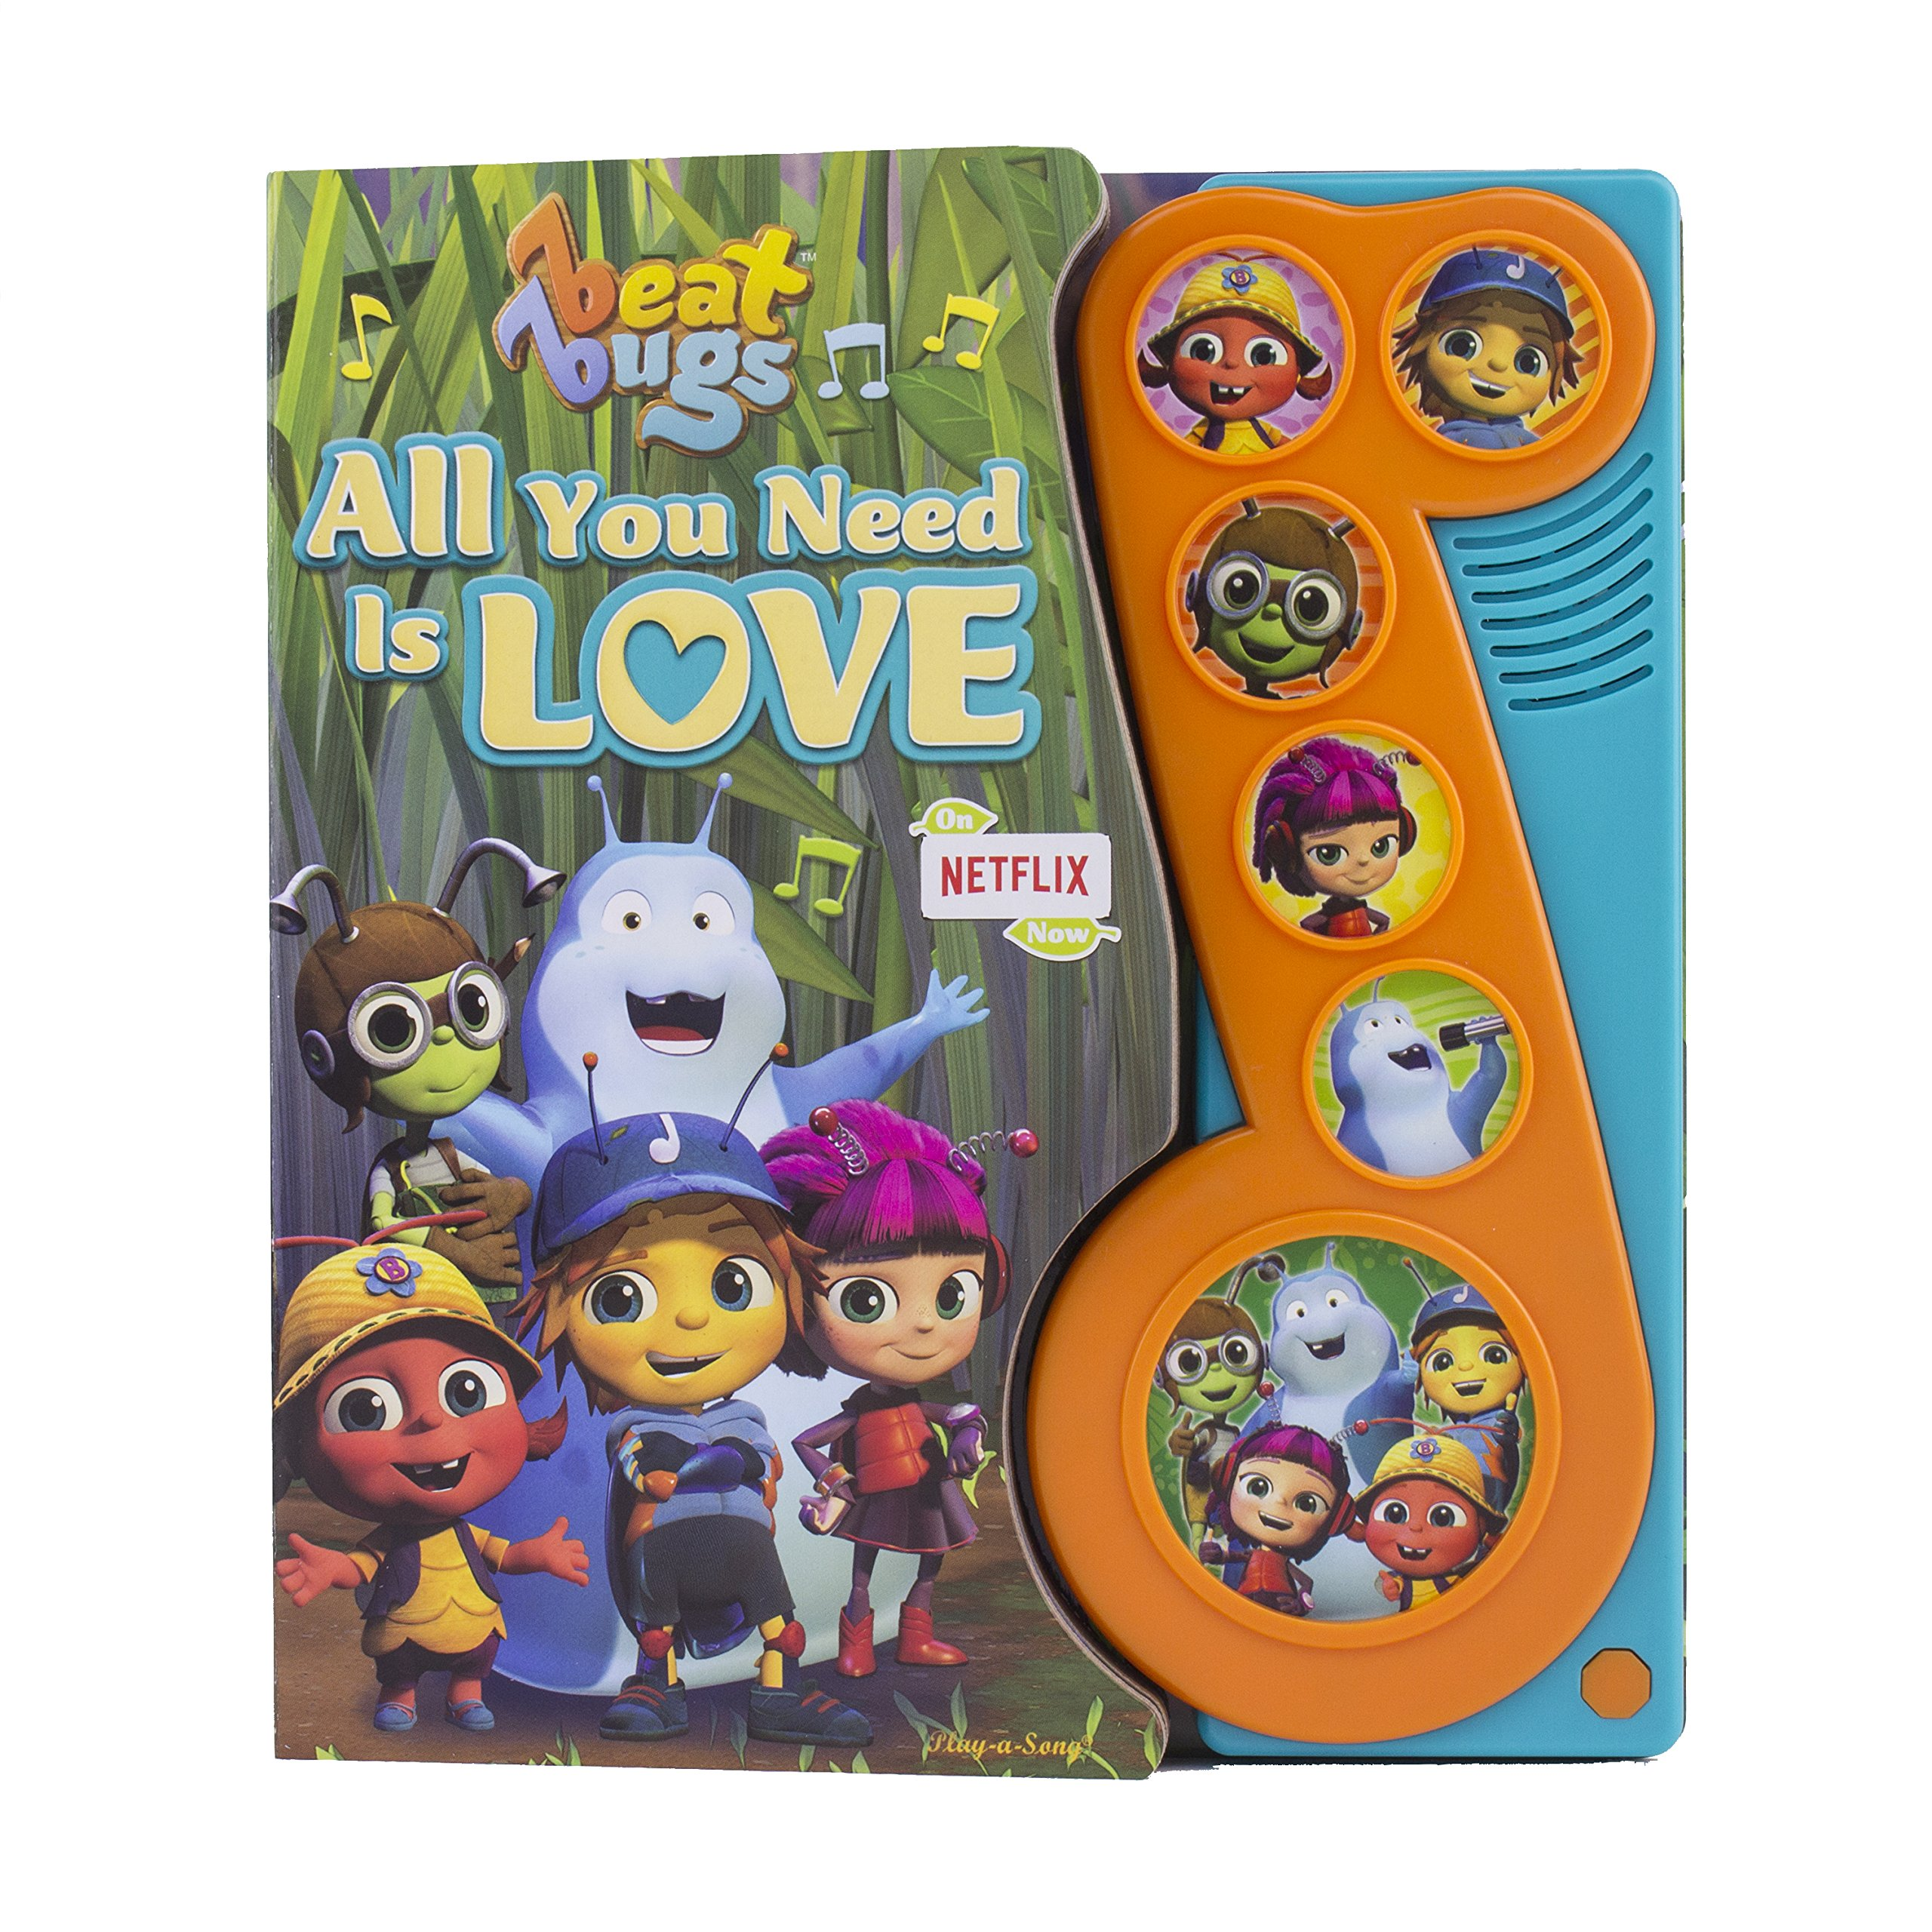 Amazon Com Netflix Beat Bugs All You Need Is Love Sound Book Play A Sound Pi Kids 9781503725584 Editors Of Phoenix International Publications Editors Of Phoenix International Publications Editors Of Phoenix International